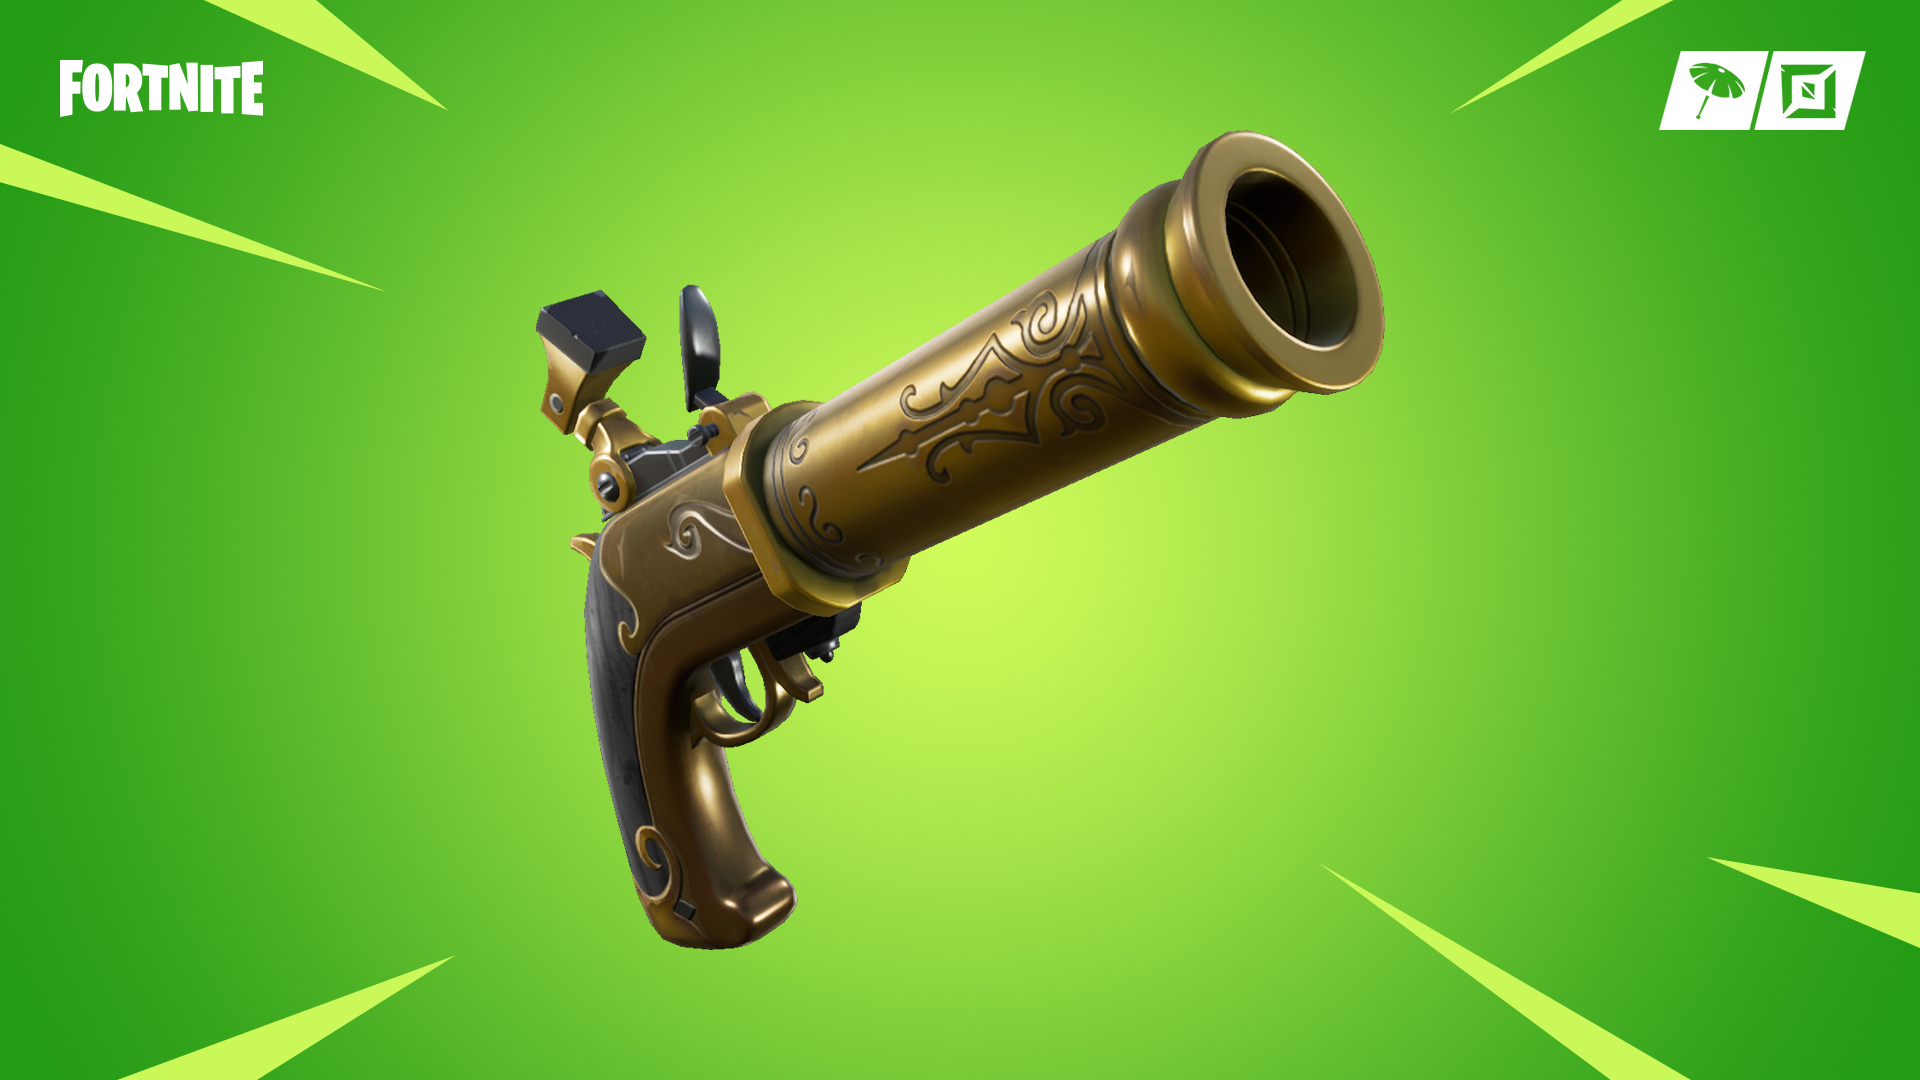 A quick, to-the-point guide on Fortnite's Flintlock Pistol image